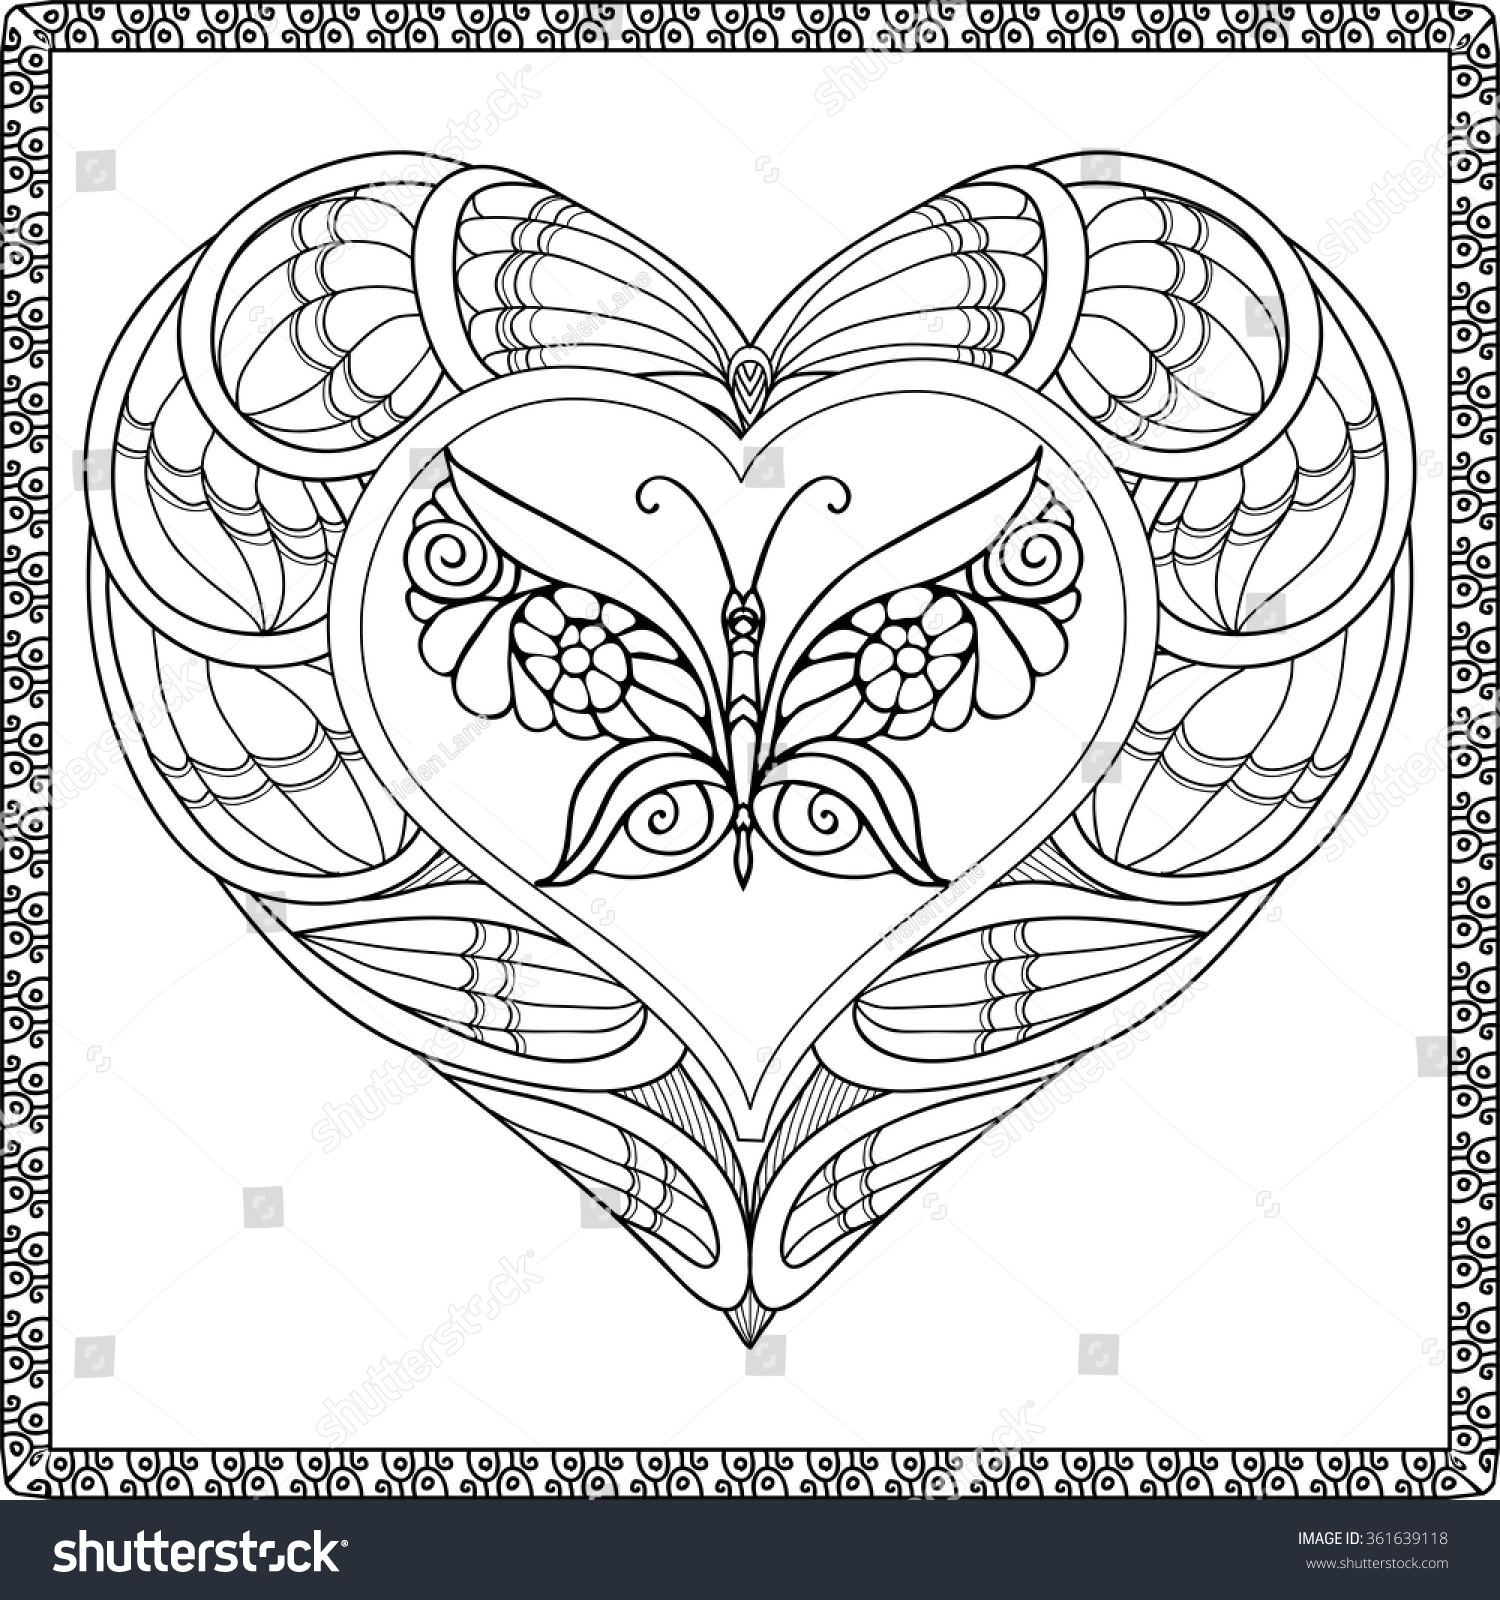 Butterfly coloring page symmetry - Love Heart With Butterfly Coloring Book For Adult And Older Children Coloring Page